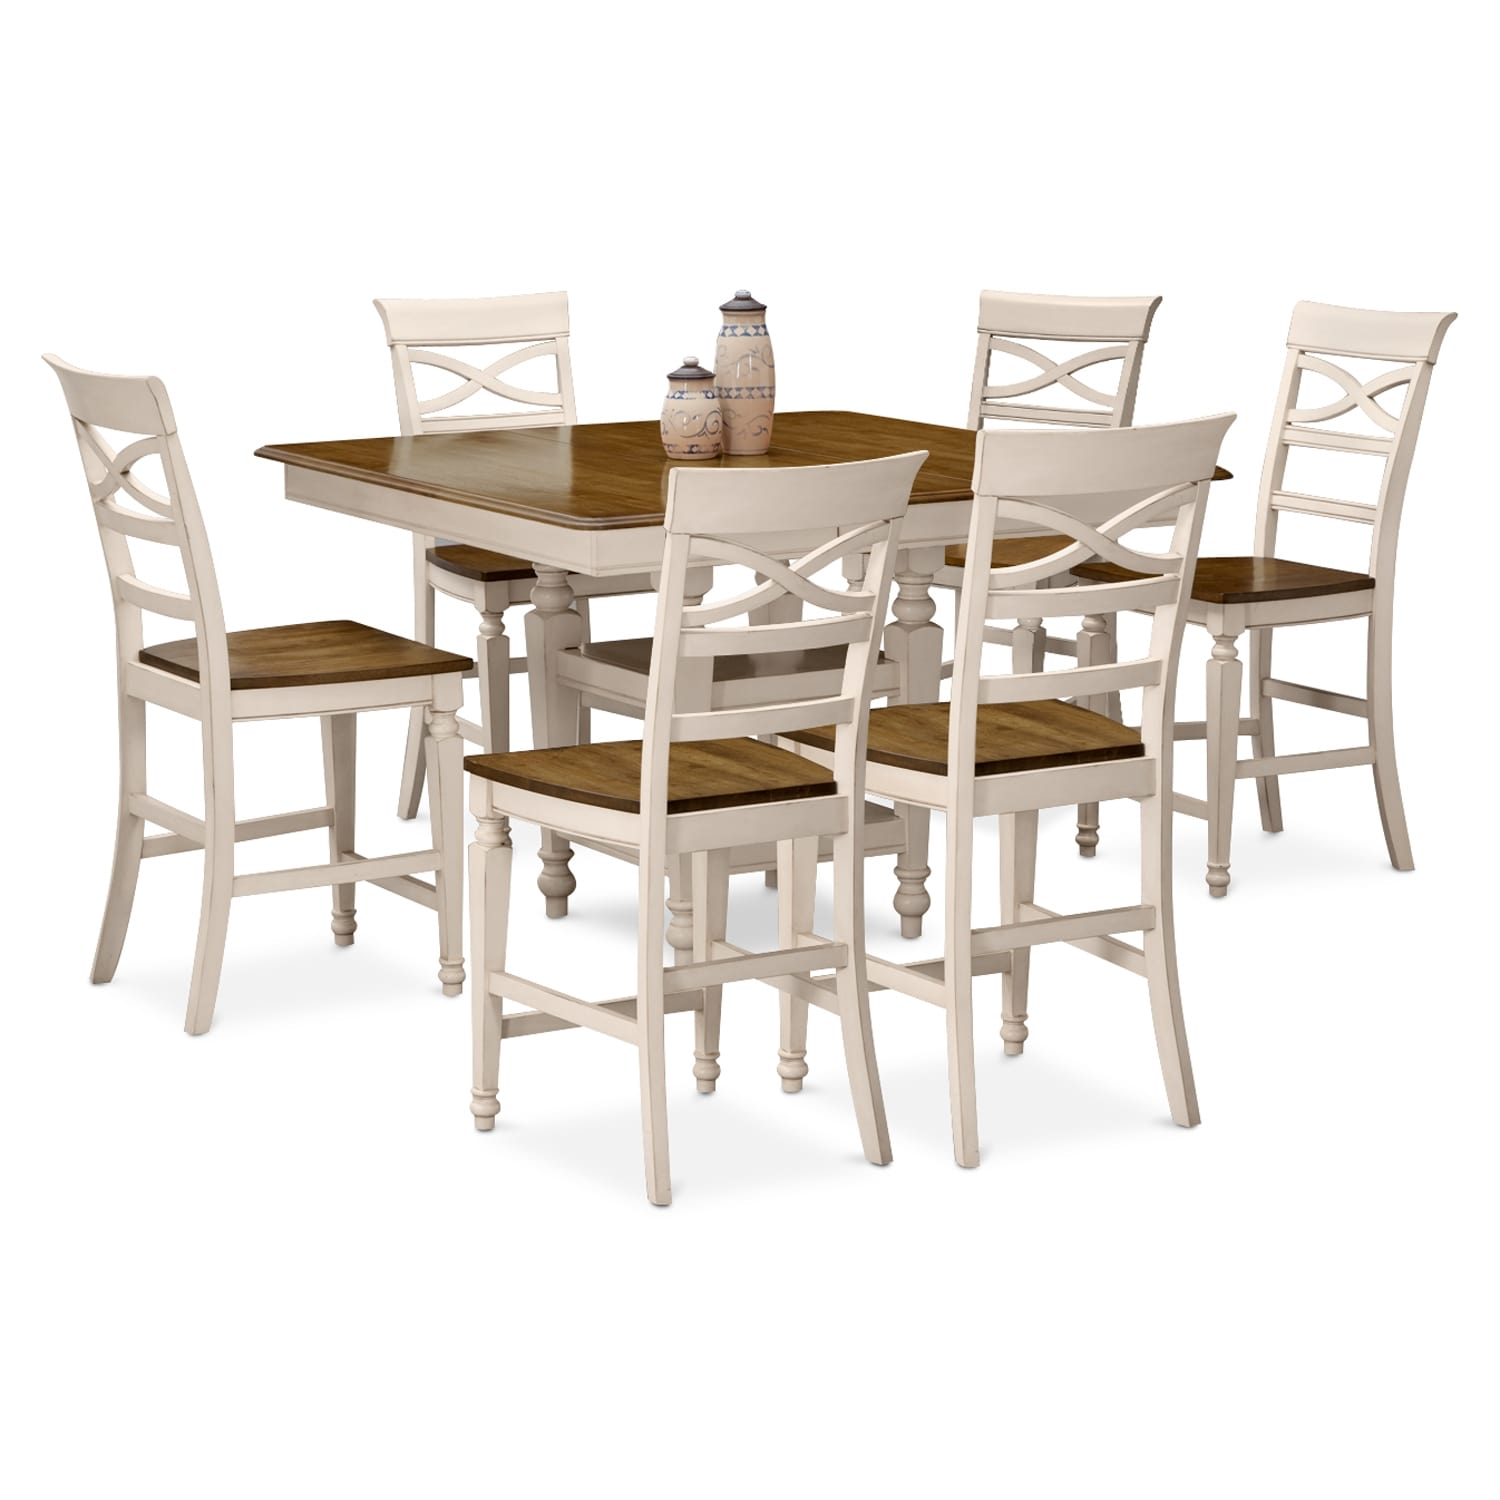 Furniture City Dining Room Suites: Chesapeake II 7 Pc. Counter-Height Dining Room